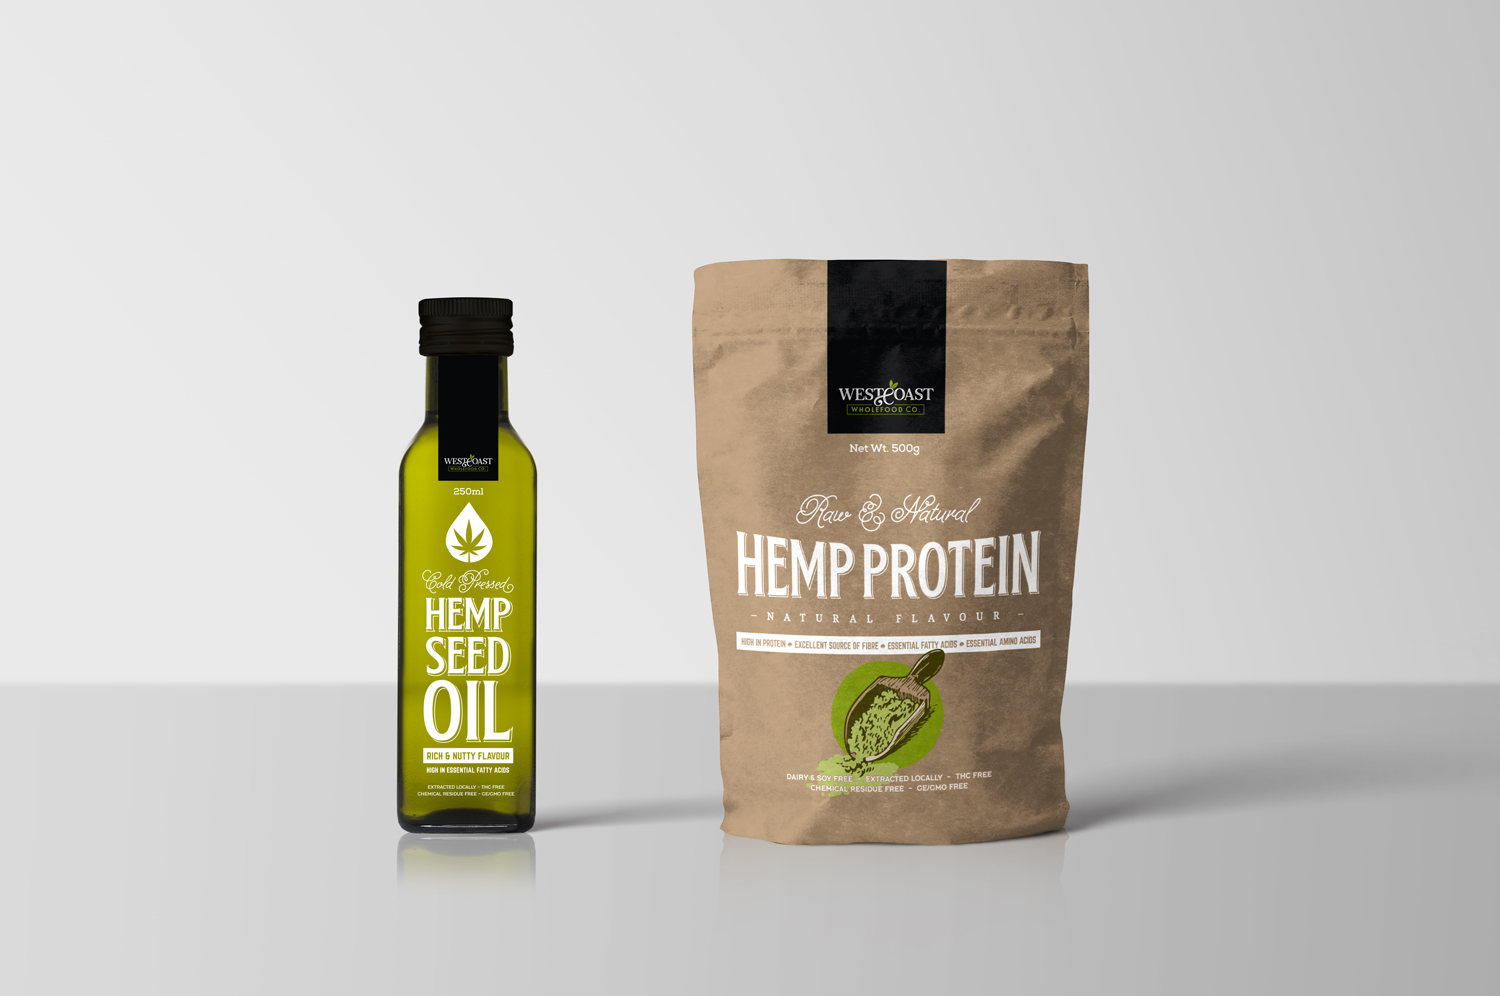 Wholefoods Natural Food Branding Graphic Packaging Design Coffee Hemp Seeds Pouch Oil Bottle Fremantle Perth WA